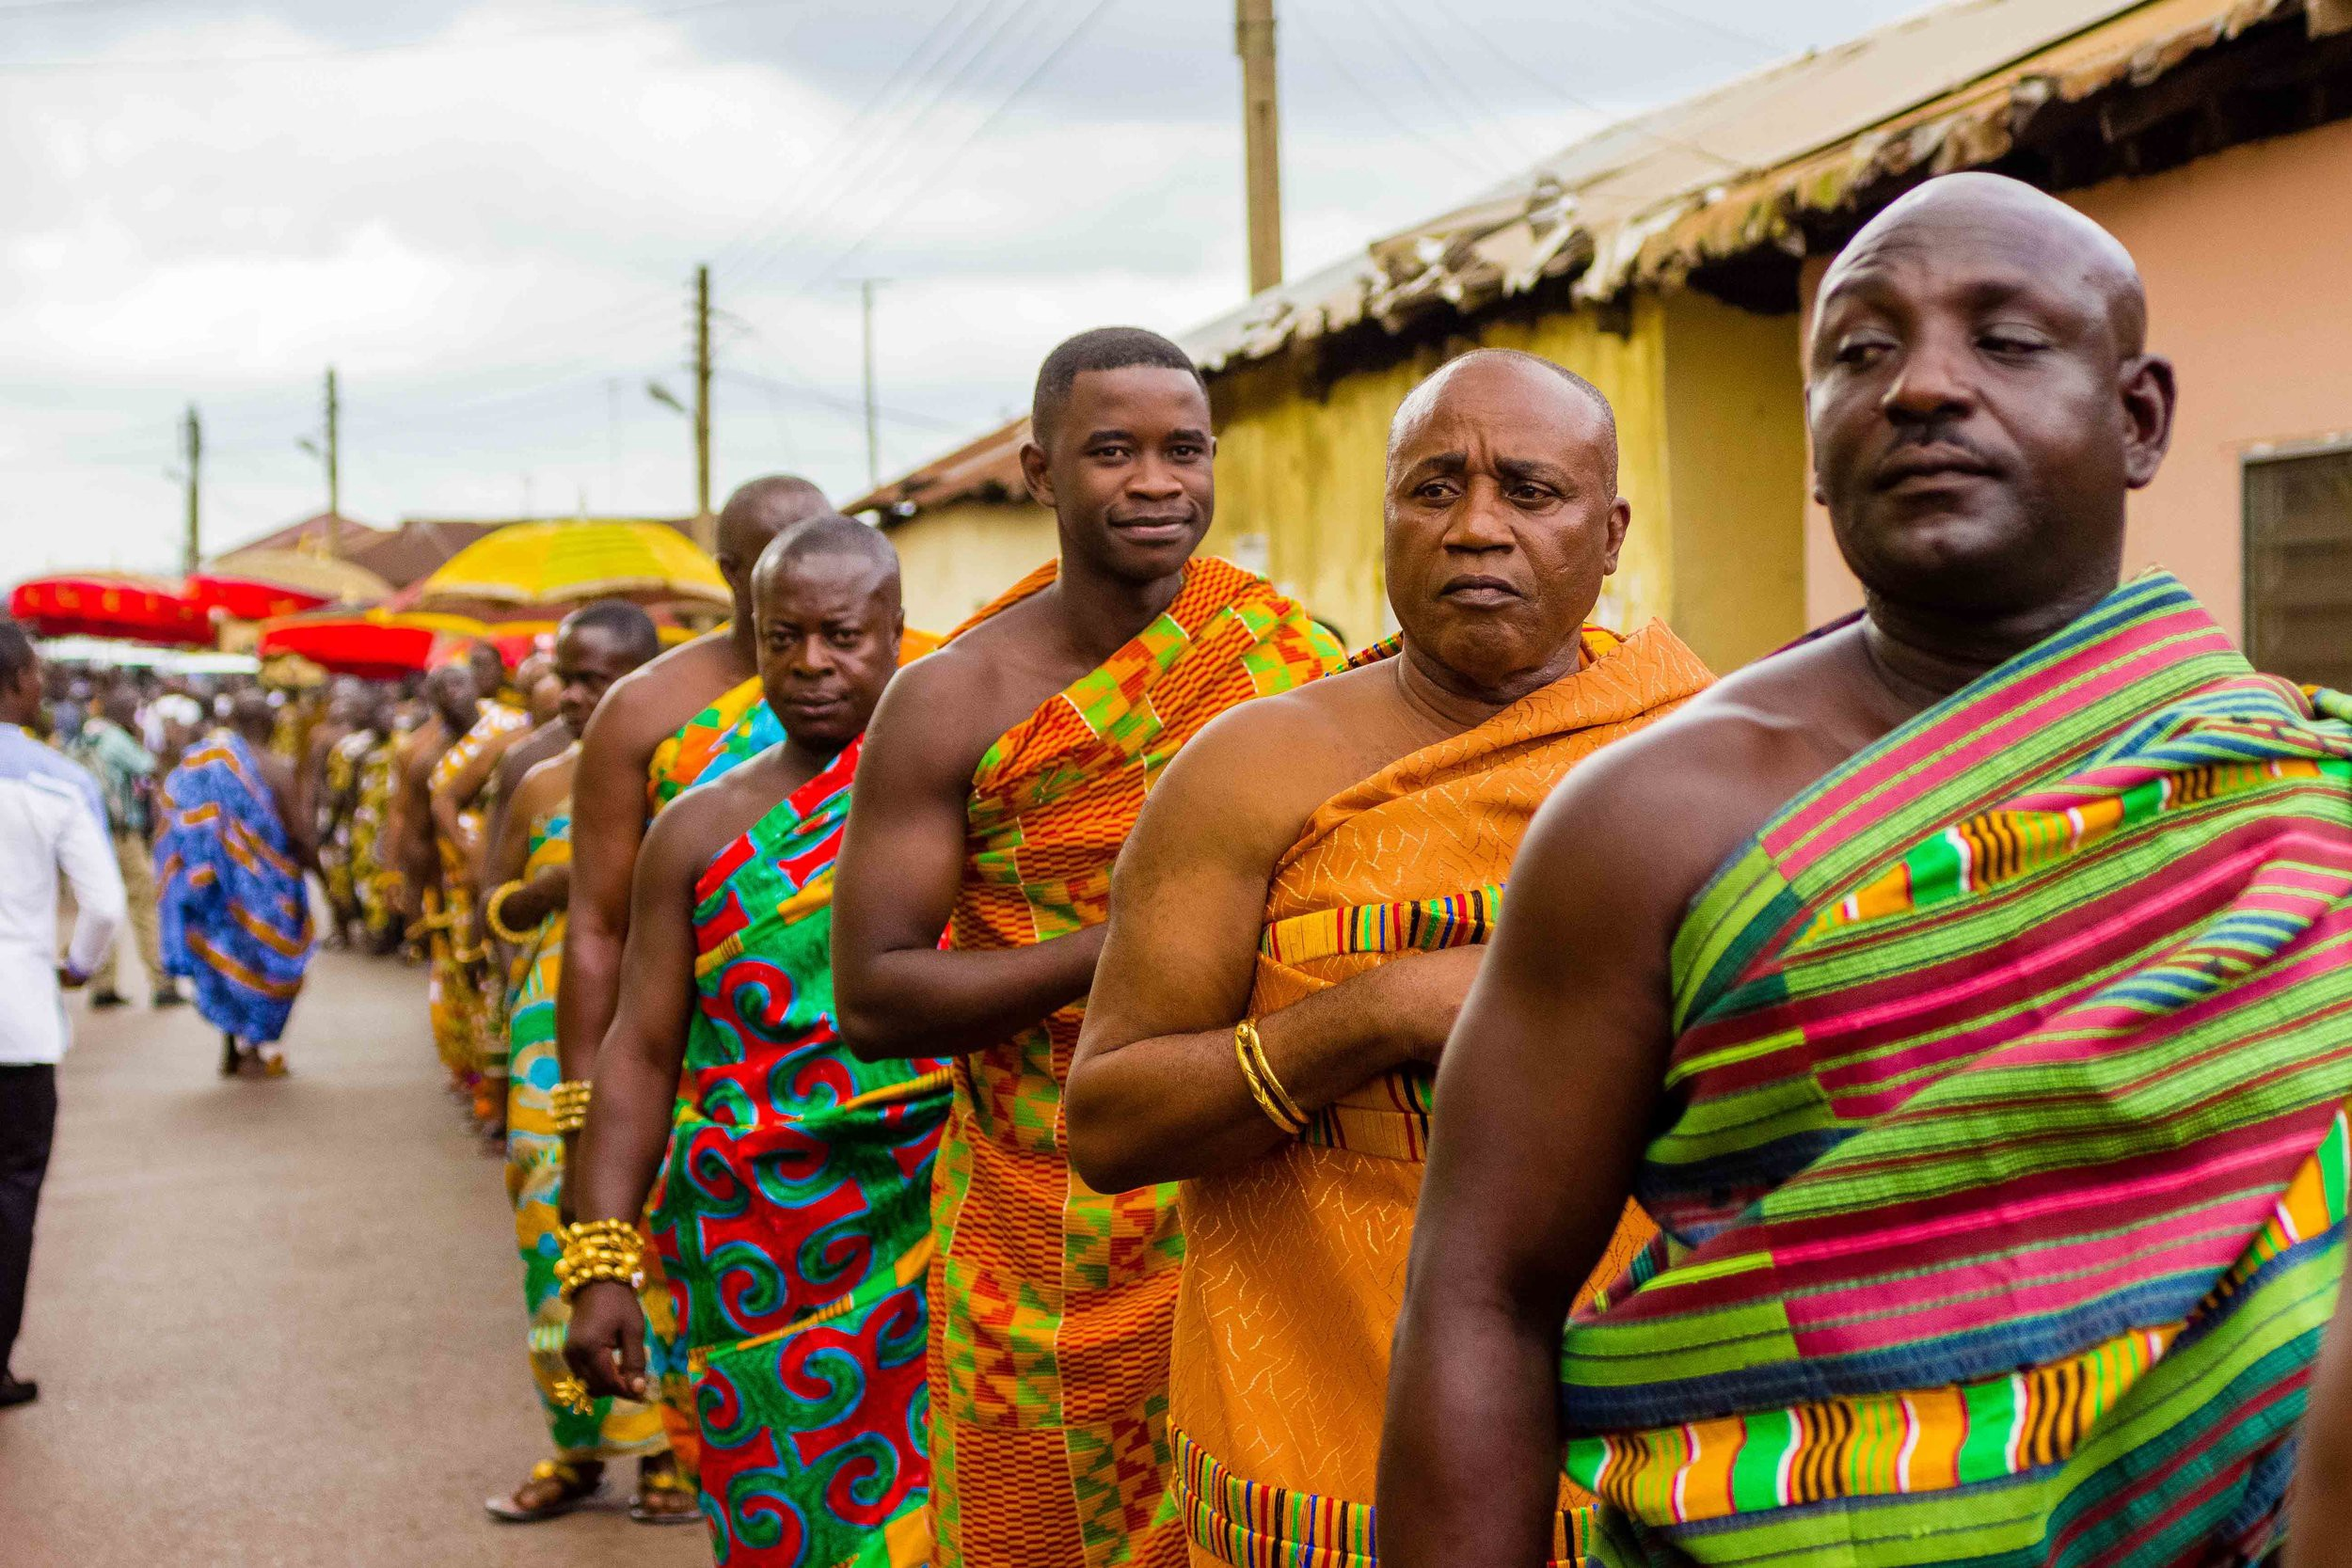 Ghana's Traditional Festivals: A View into Our Unique